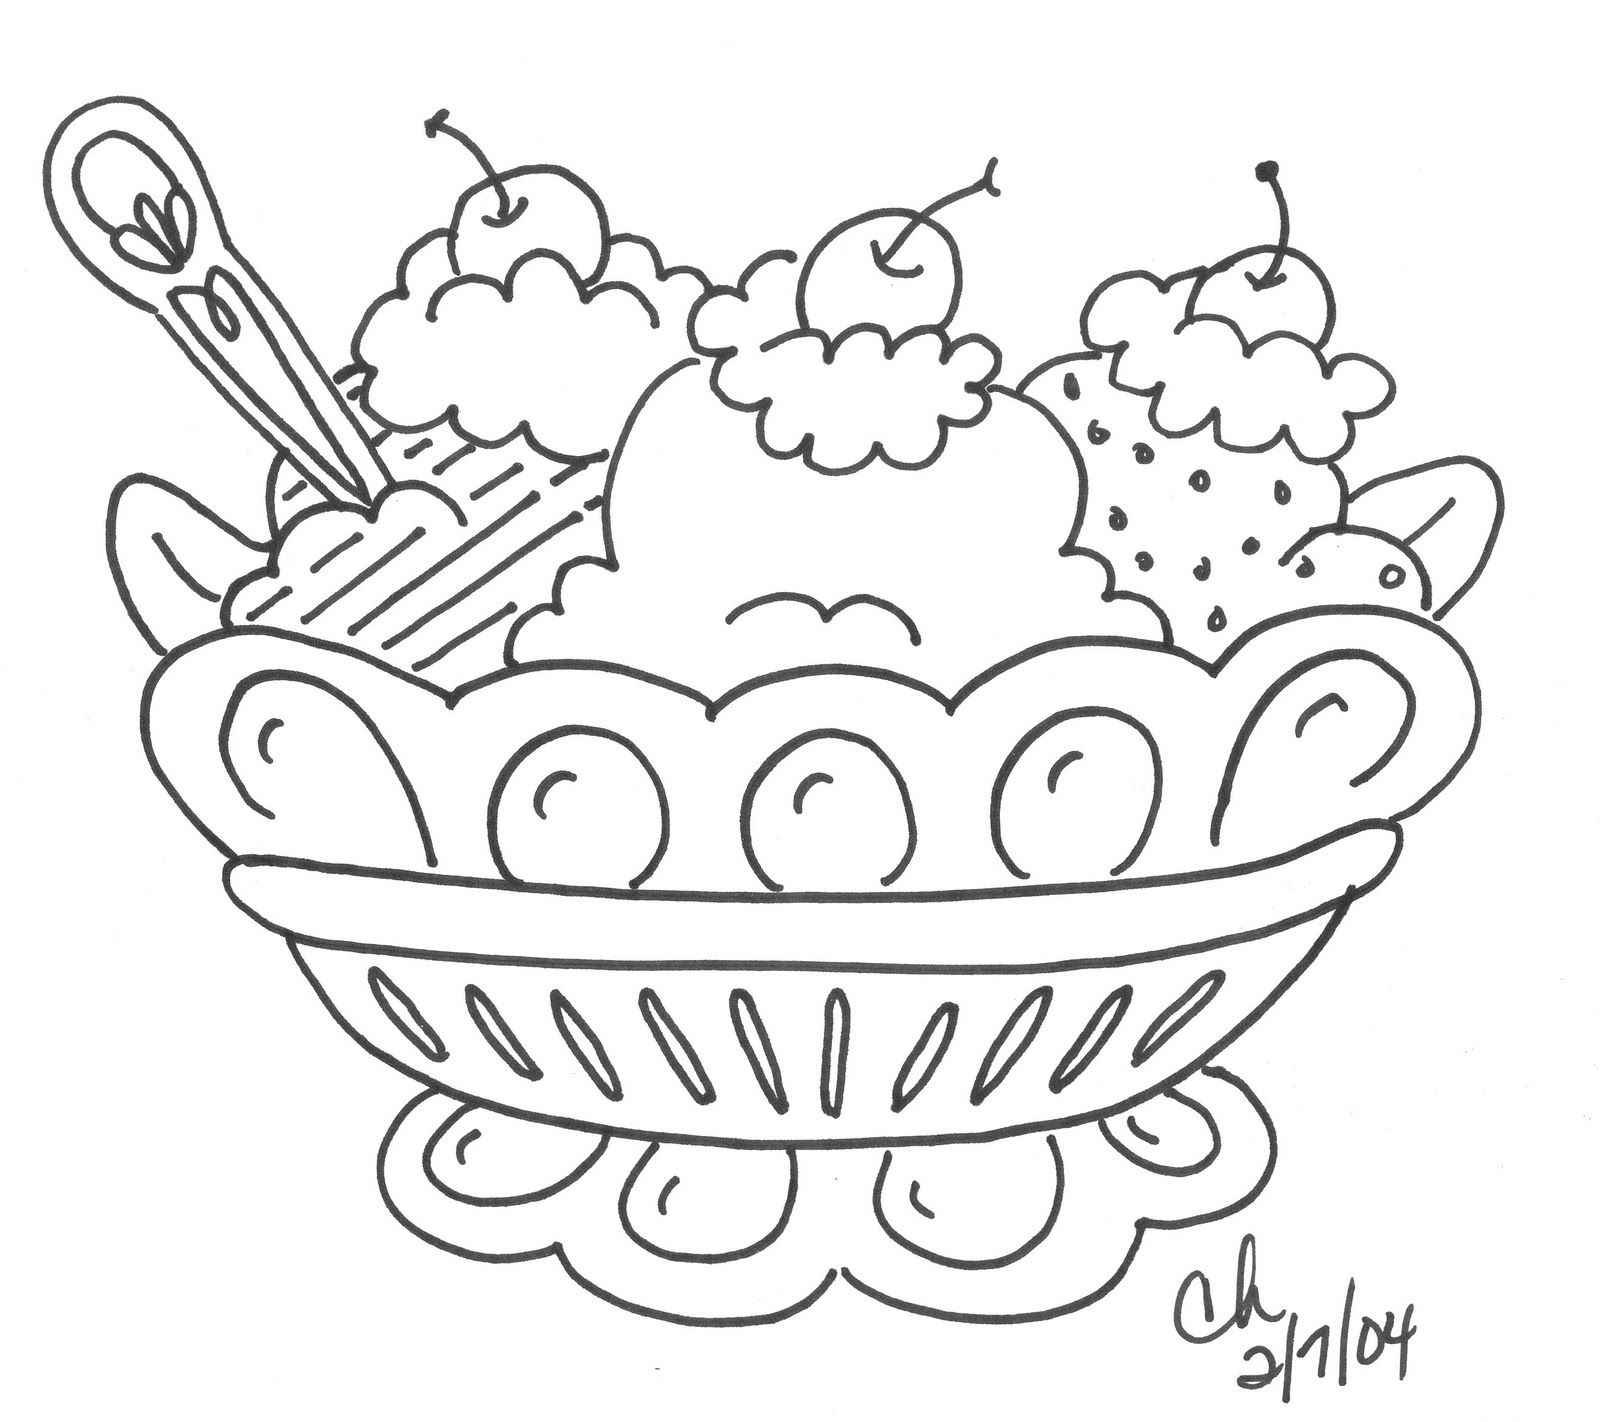 Stitch Stitch Stitch Free Redwork Dessert Coloring Pages Embroidery Patterns Coloring Books